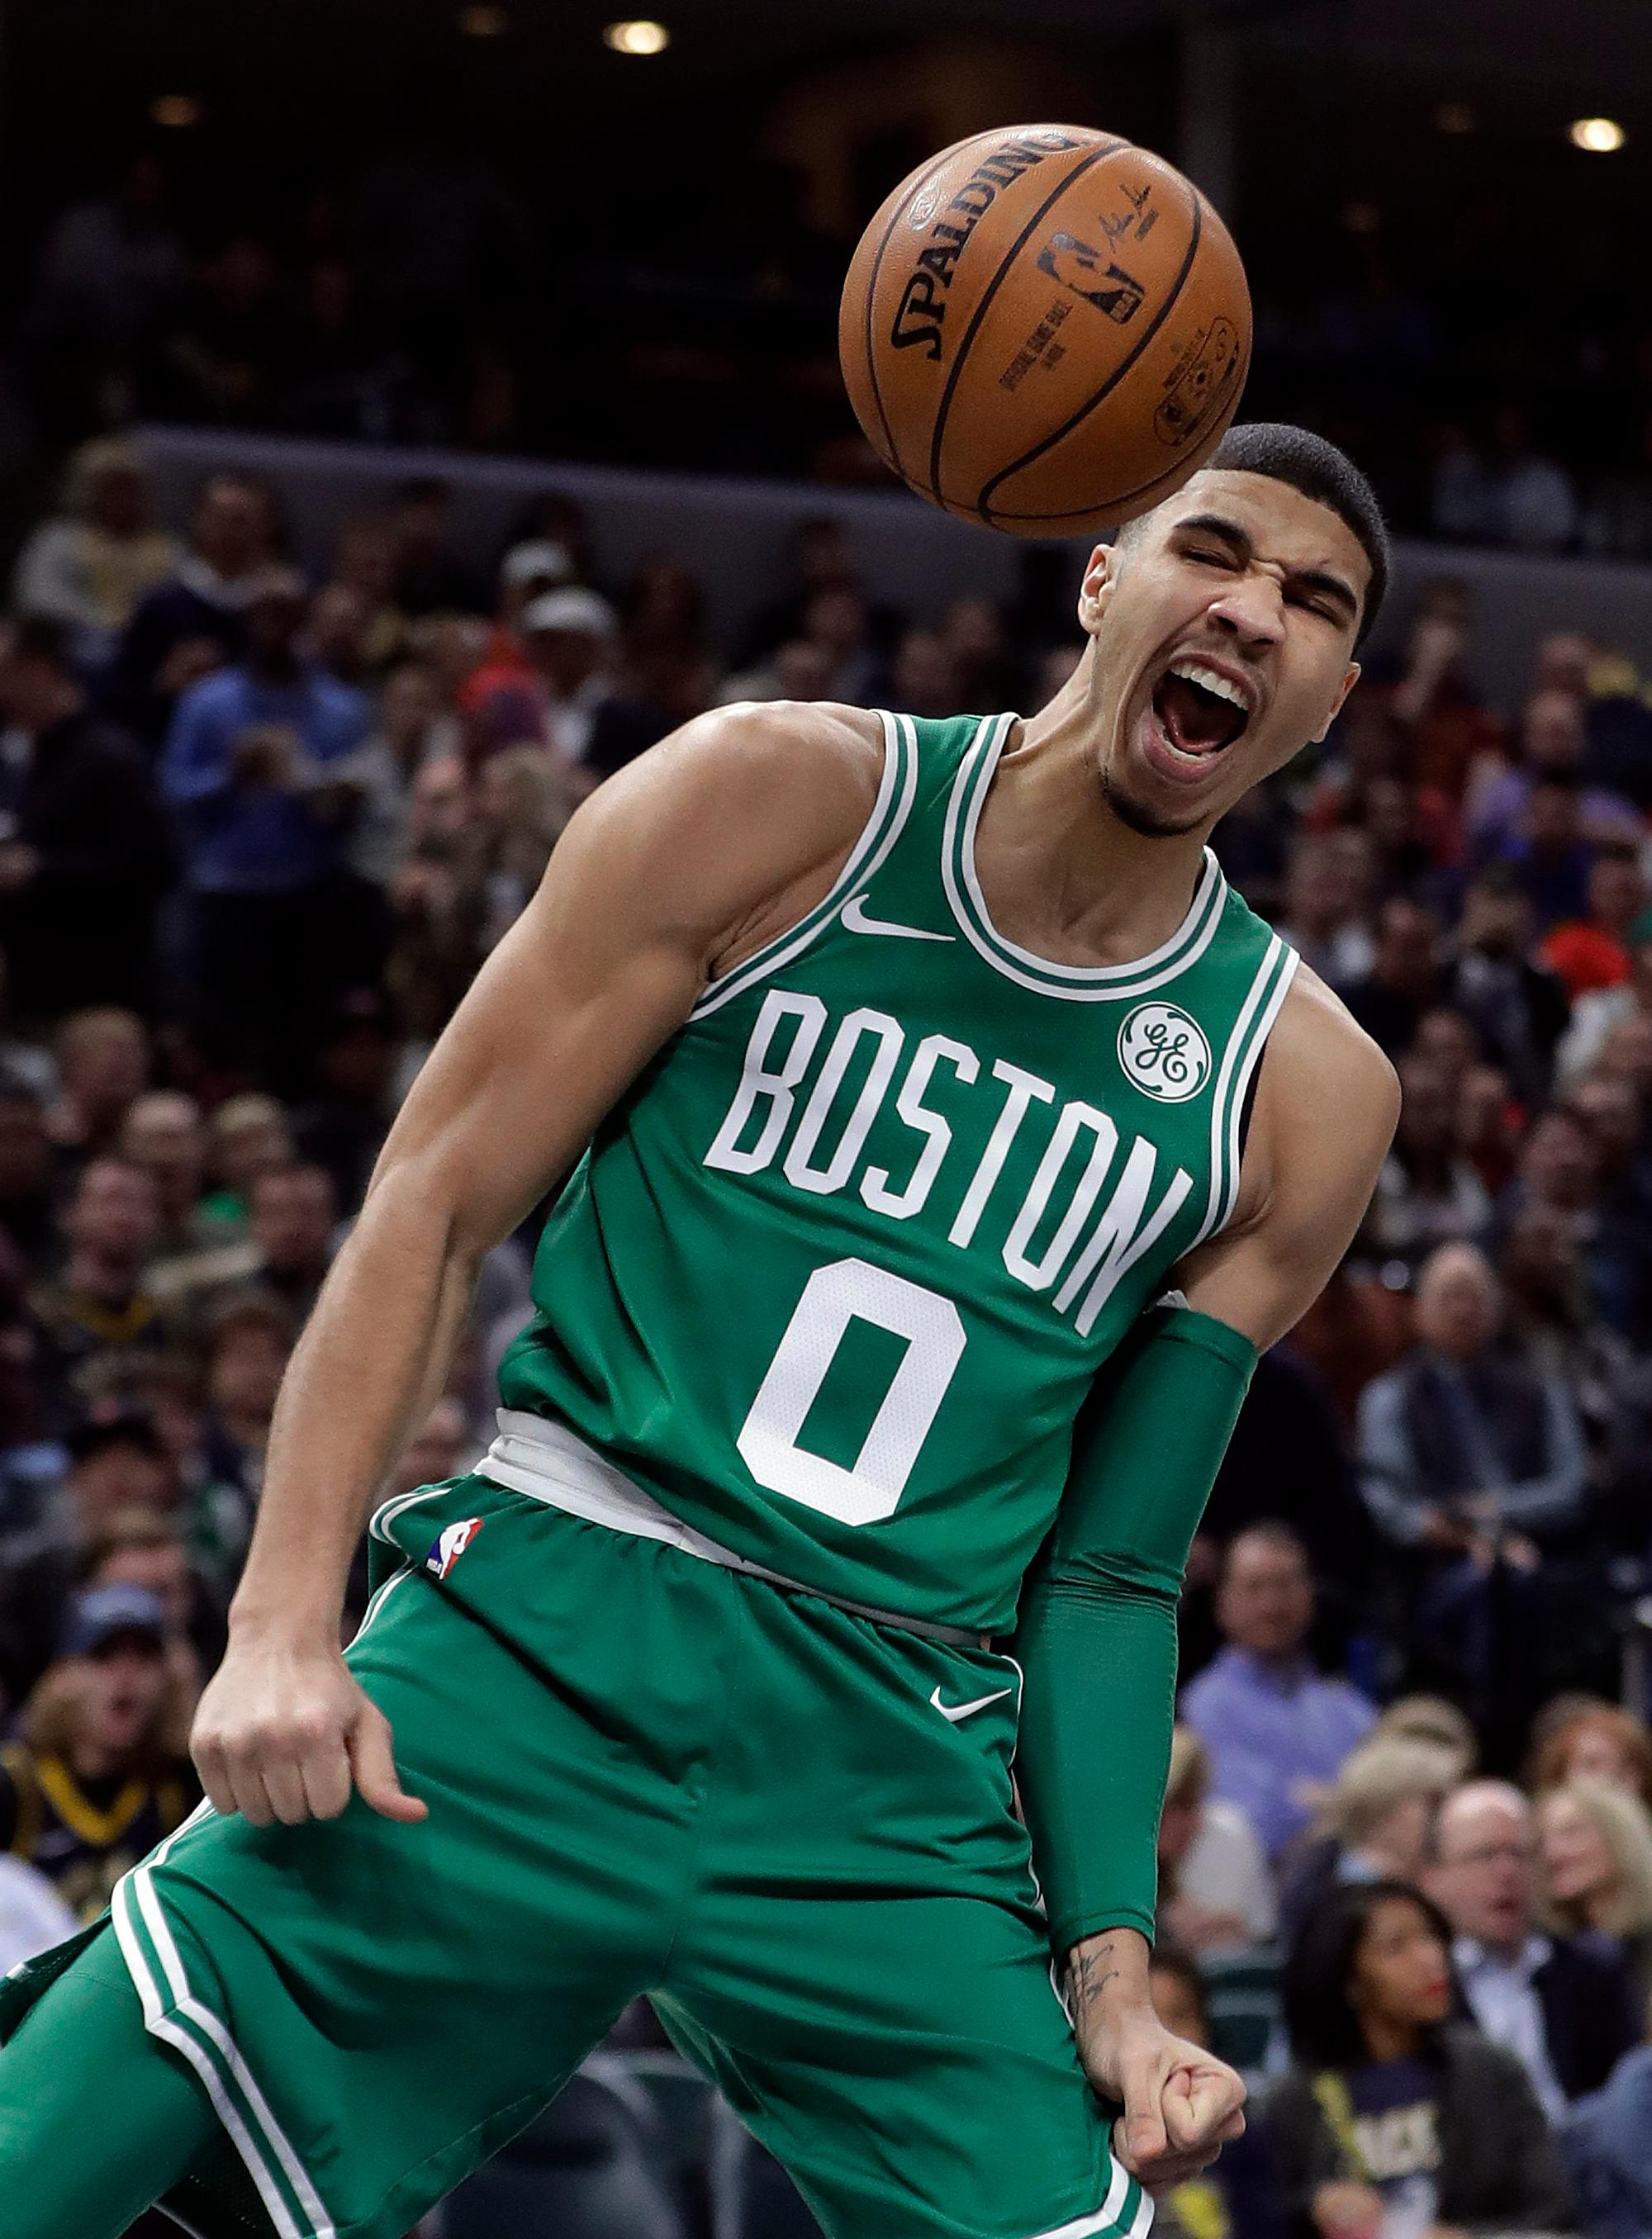 Boston Celtics' Jayson Tatum reacts after a dunk during the second half of an NBA basketball game against the Indiana Pacers, Monday, Dec. 18, 2017, in Indianapolis. (AP Photo/Darron Cummings)